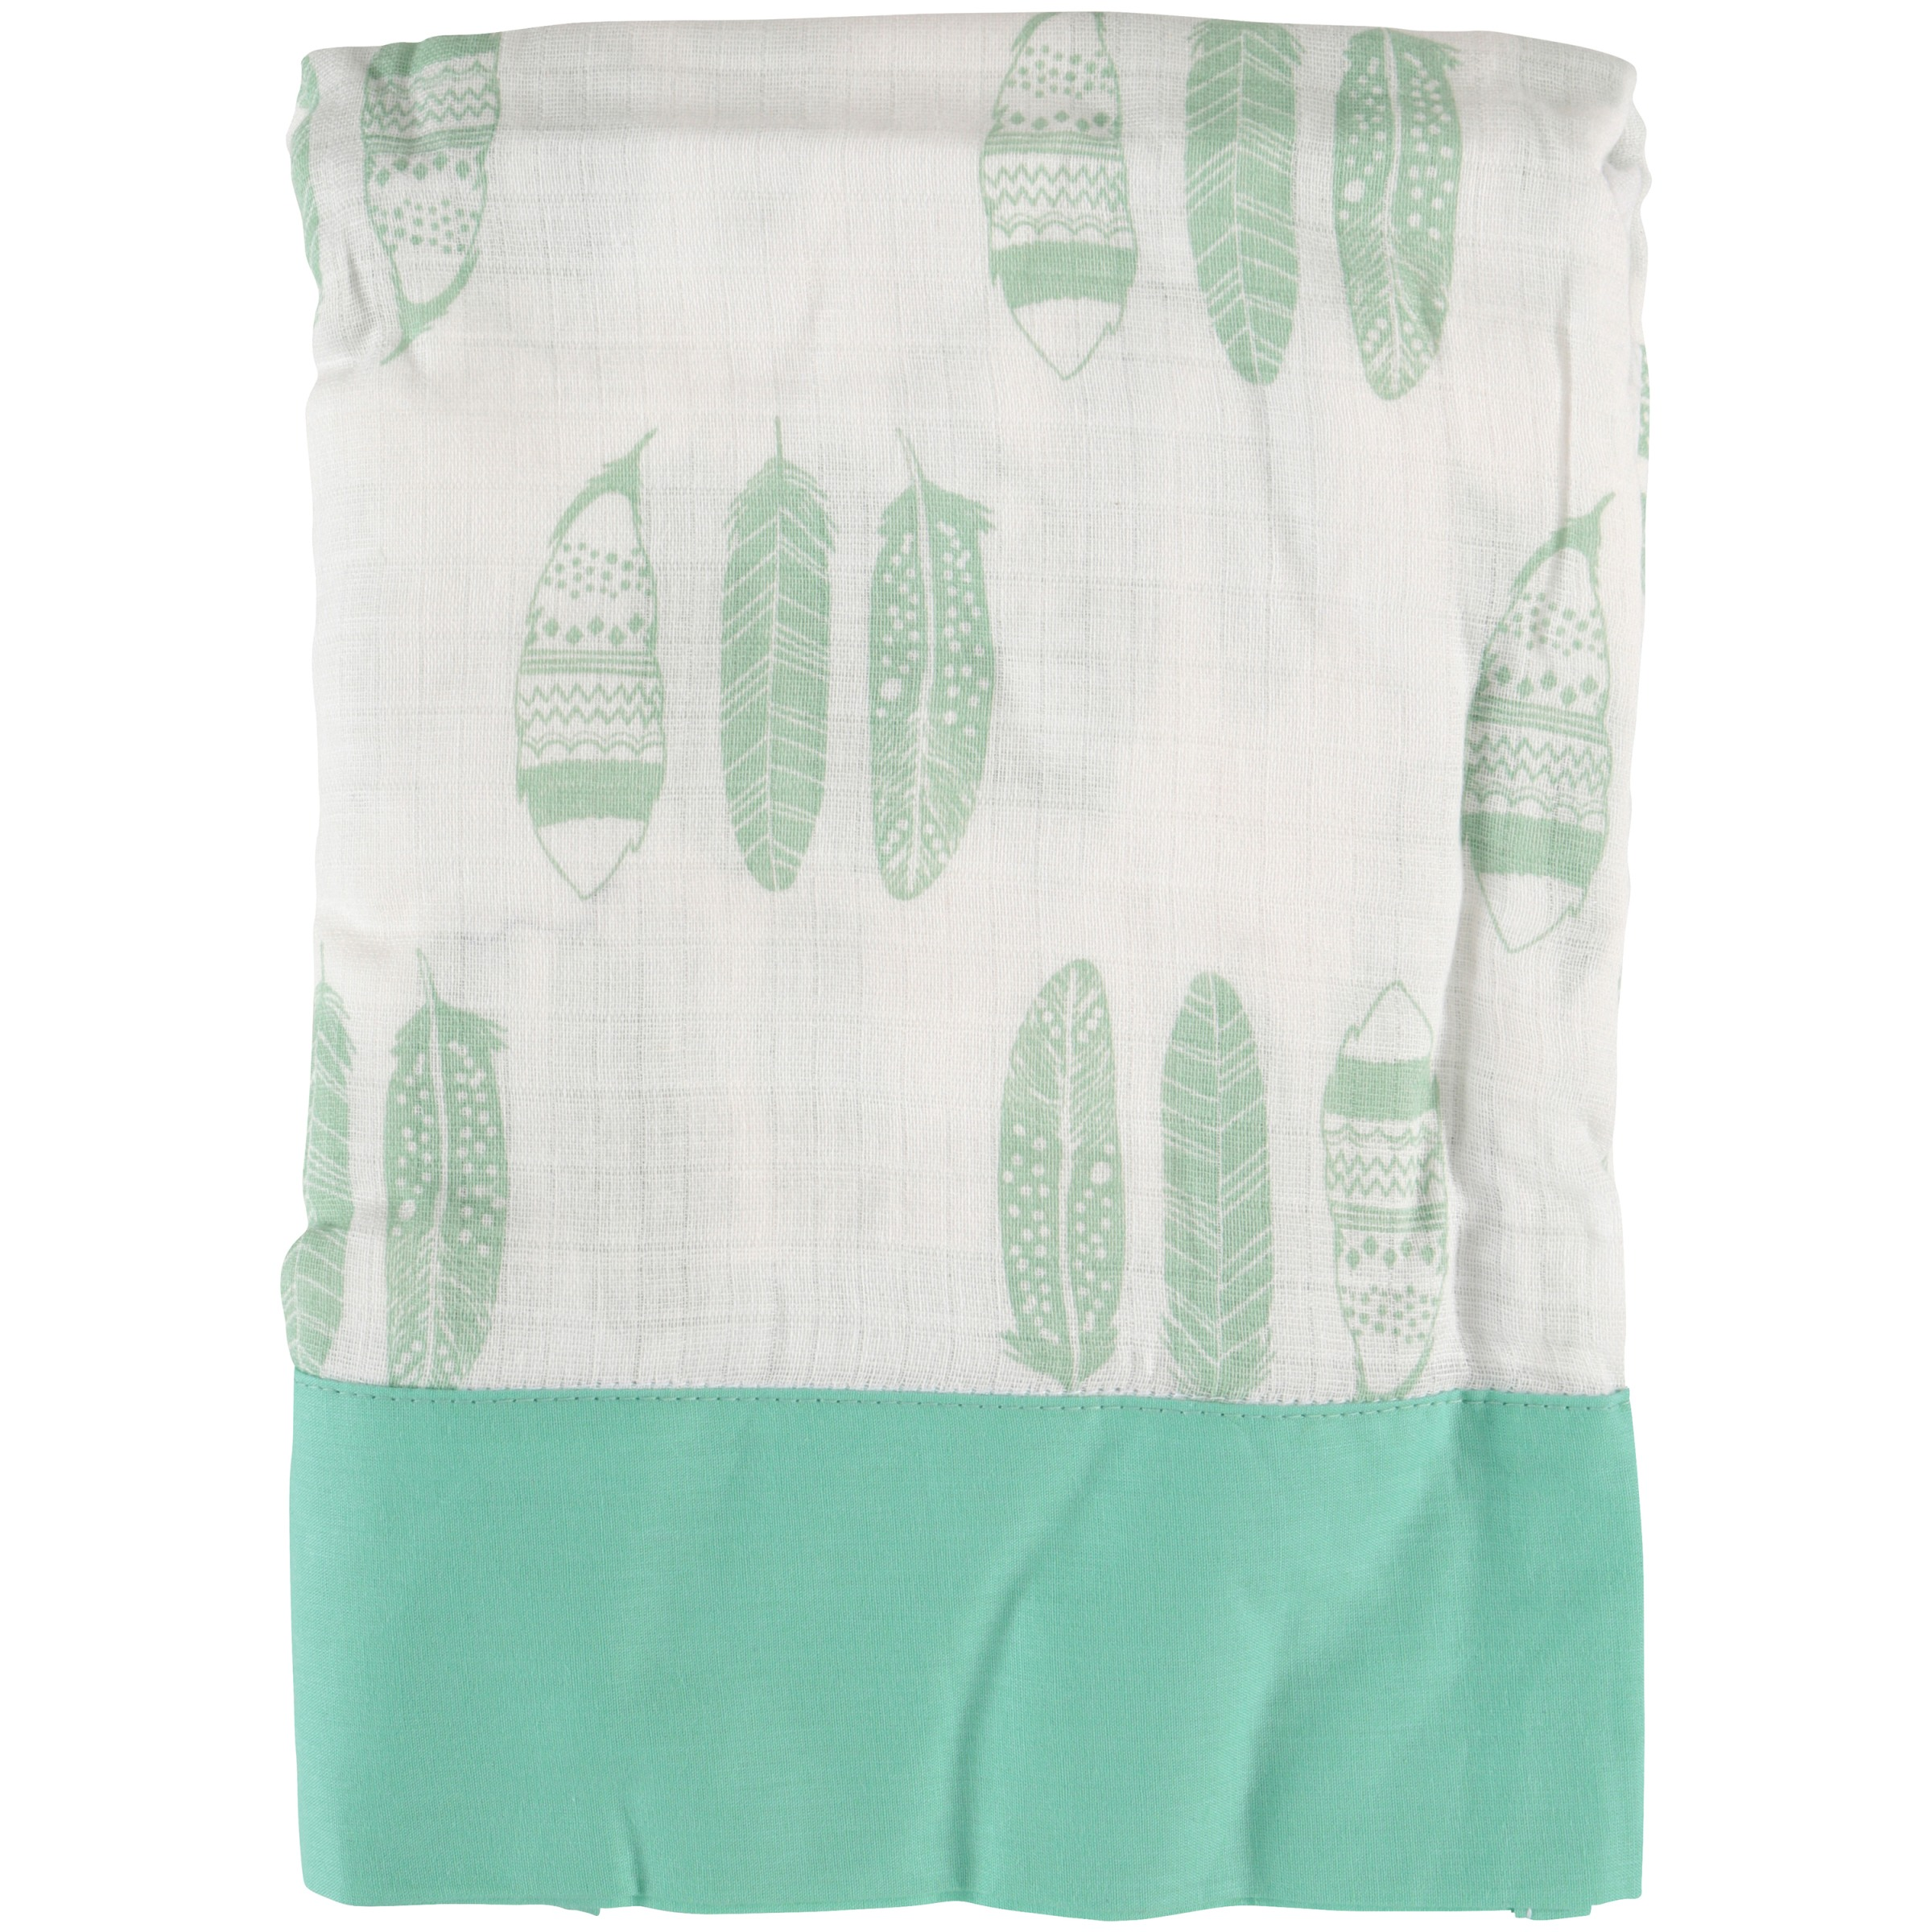 Bacati™ Noah Tribal Mint Feathers Muslin Toddler Sheet Set 3 pc Pack